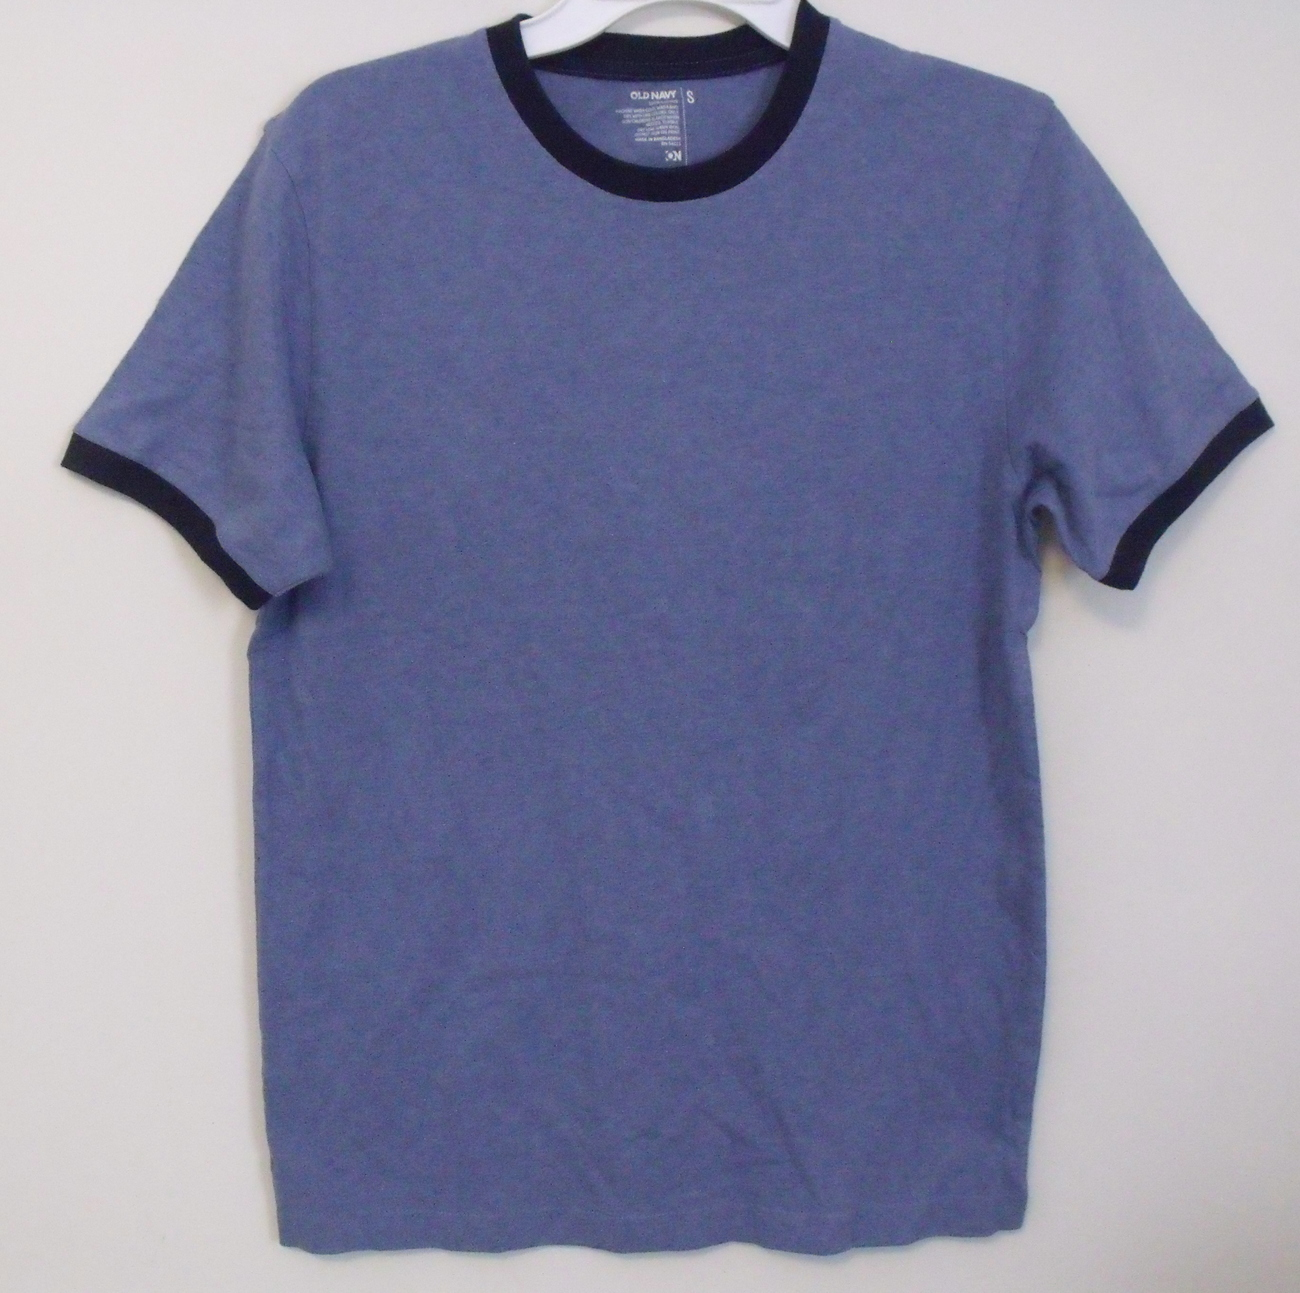 Mens old navy blue t shirt front